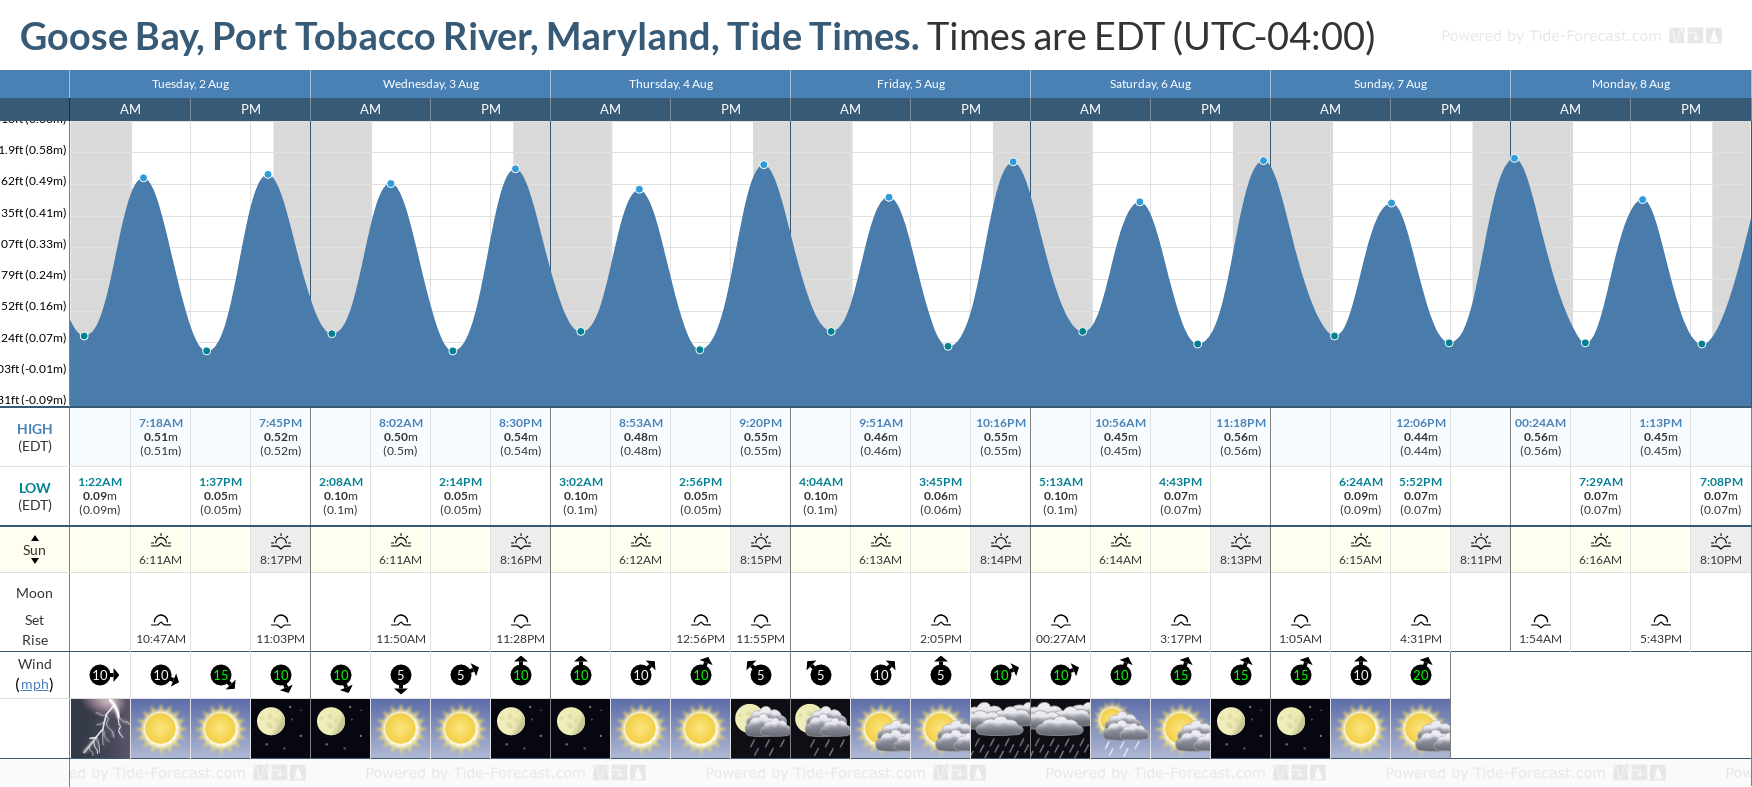 Goose Bay, Port Tobacco River, Maryland Tide Chart including high and low tide tide times for the next 7 days